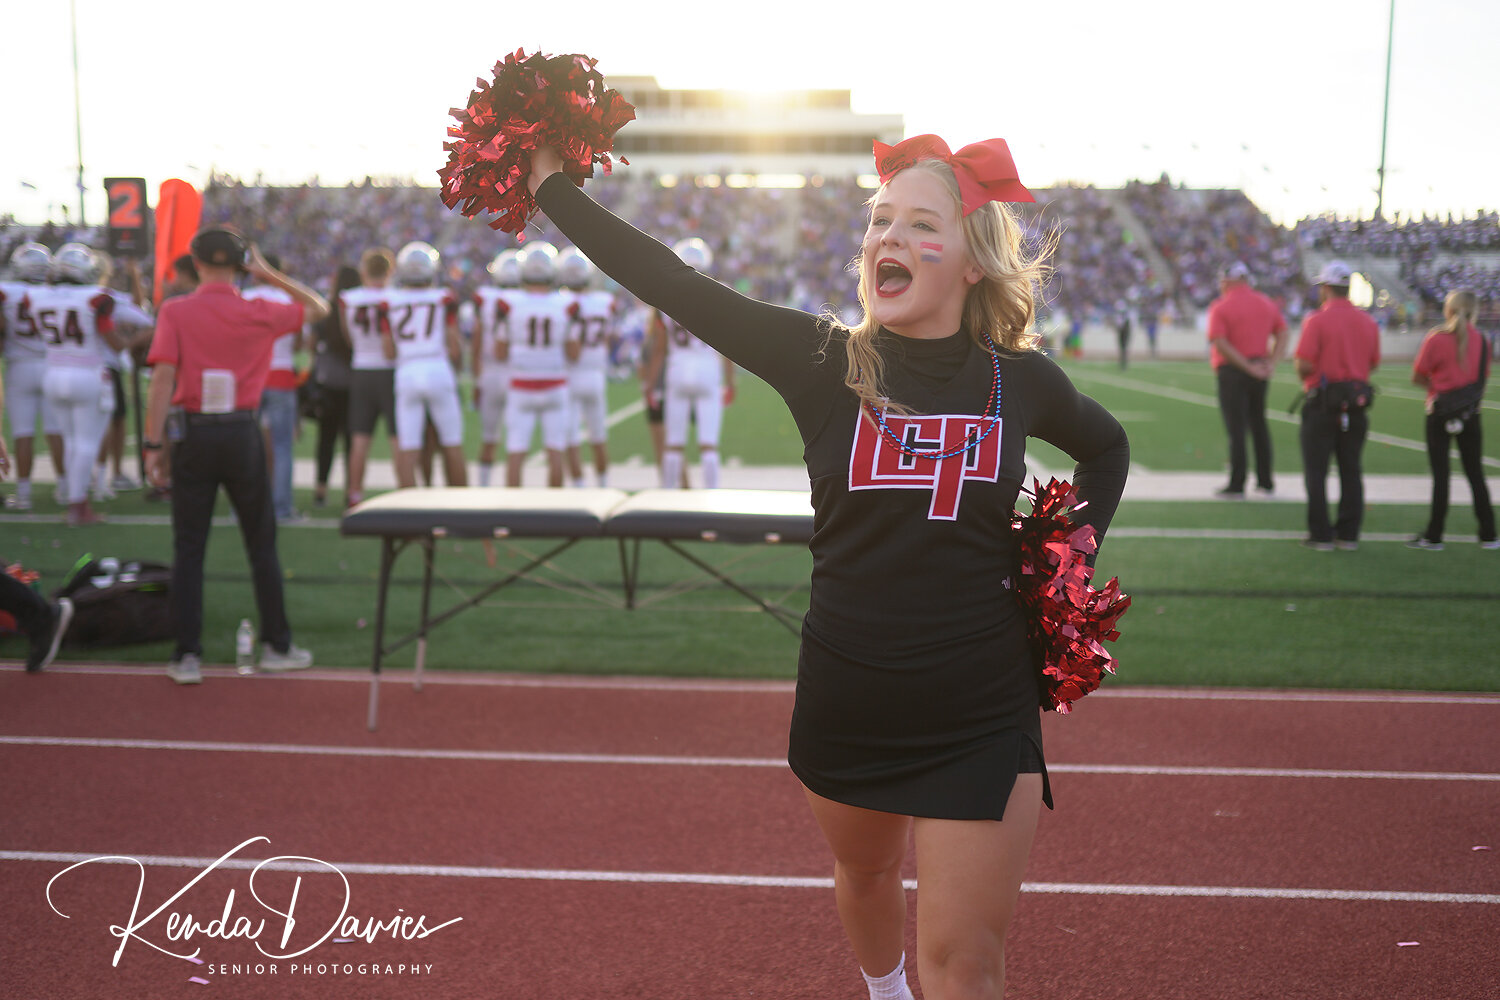 Cami Townsend yells out a cheer as Pirate football players and coaches intensely watch the game from the sidelines.